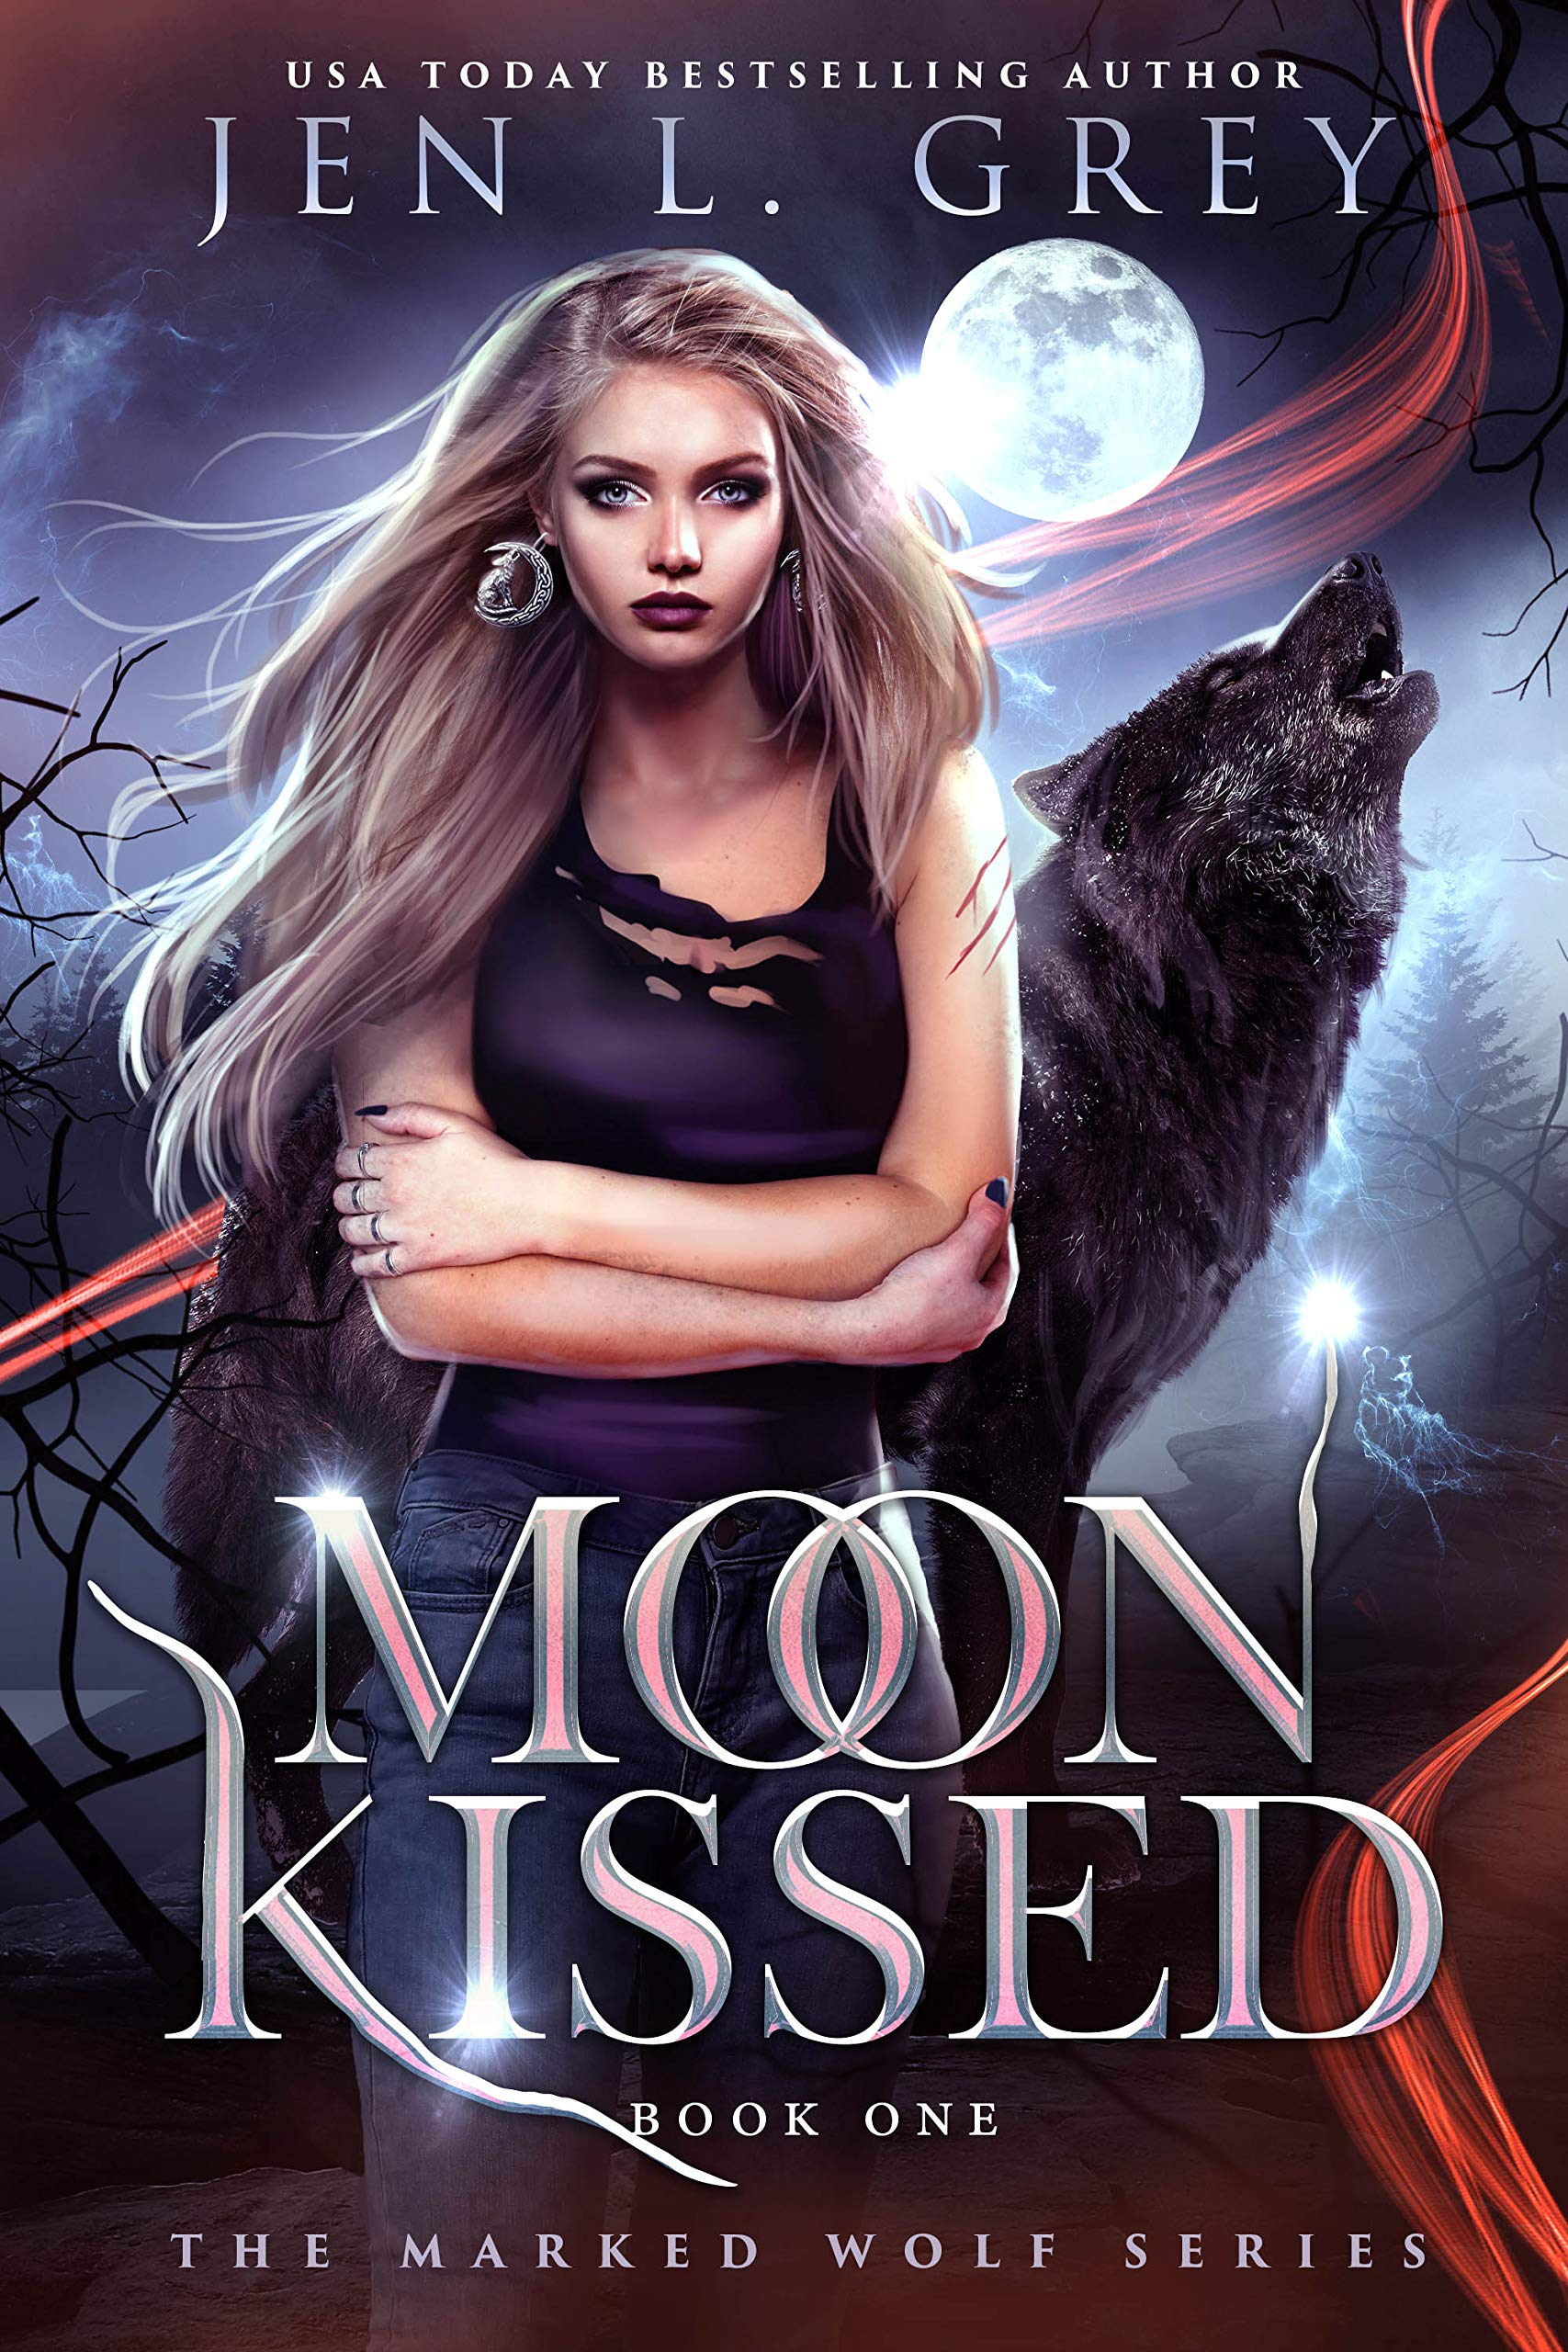 Moon Kissed (The Marked Wolf, #1)